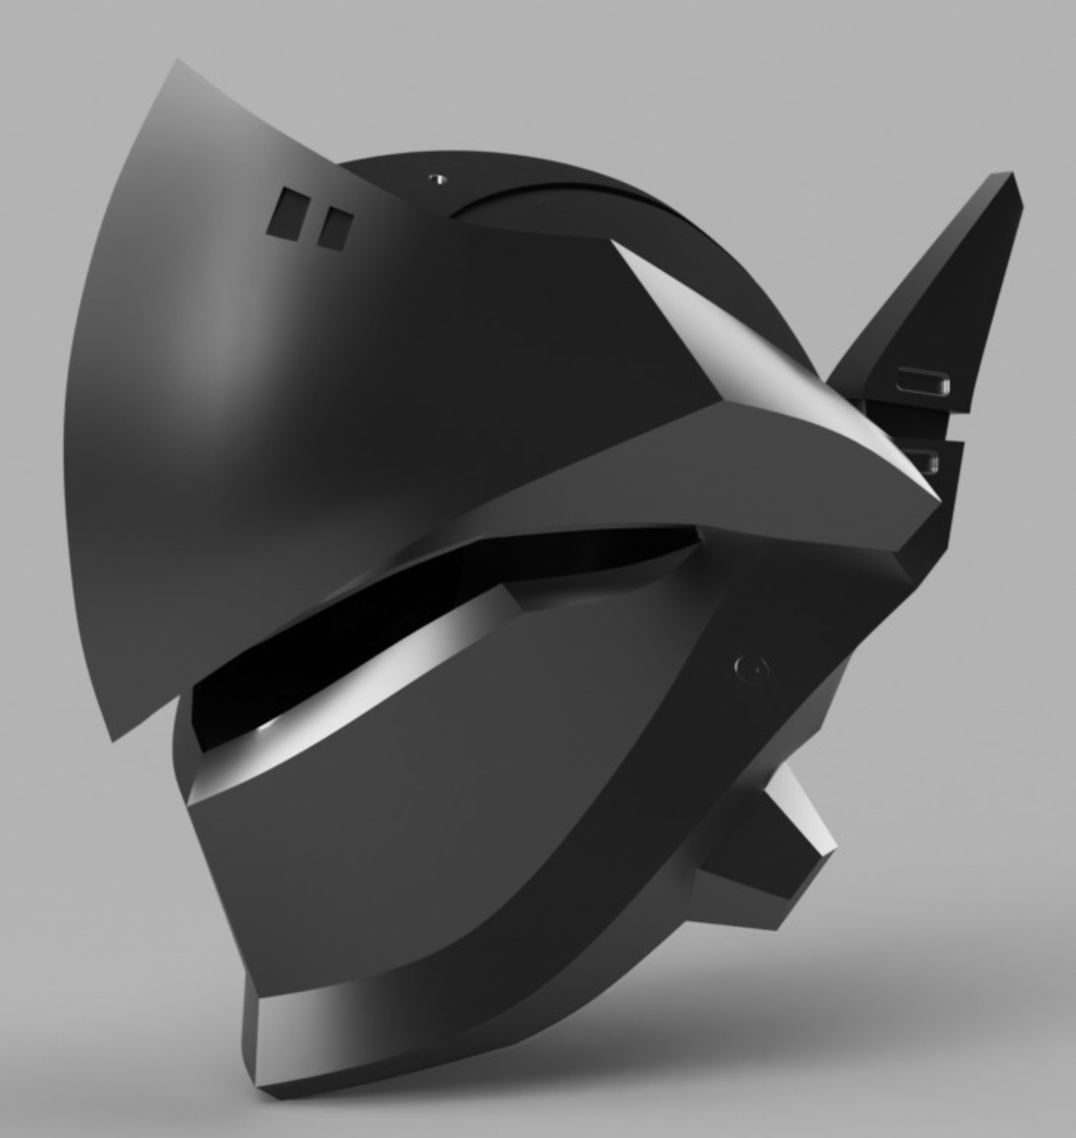 Capture d'écran 2017-09-14 à 17.25.03.png Download free STL file Genji Helmet (Overwatch) • 3D printing template, VillainousPropShop